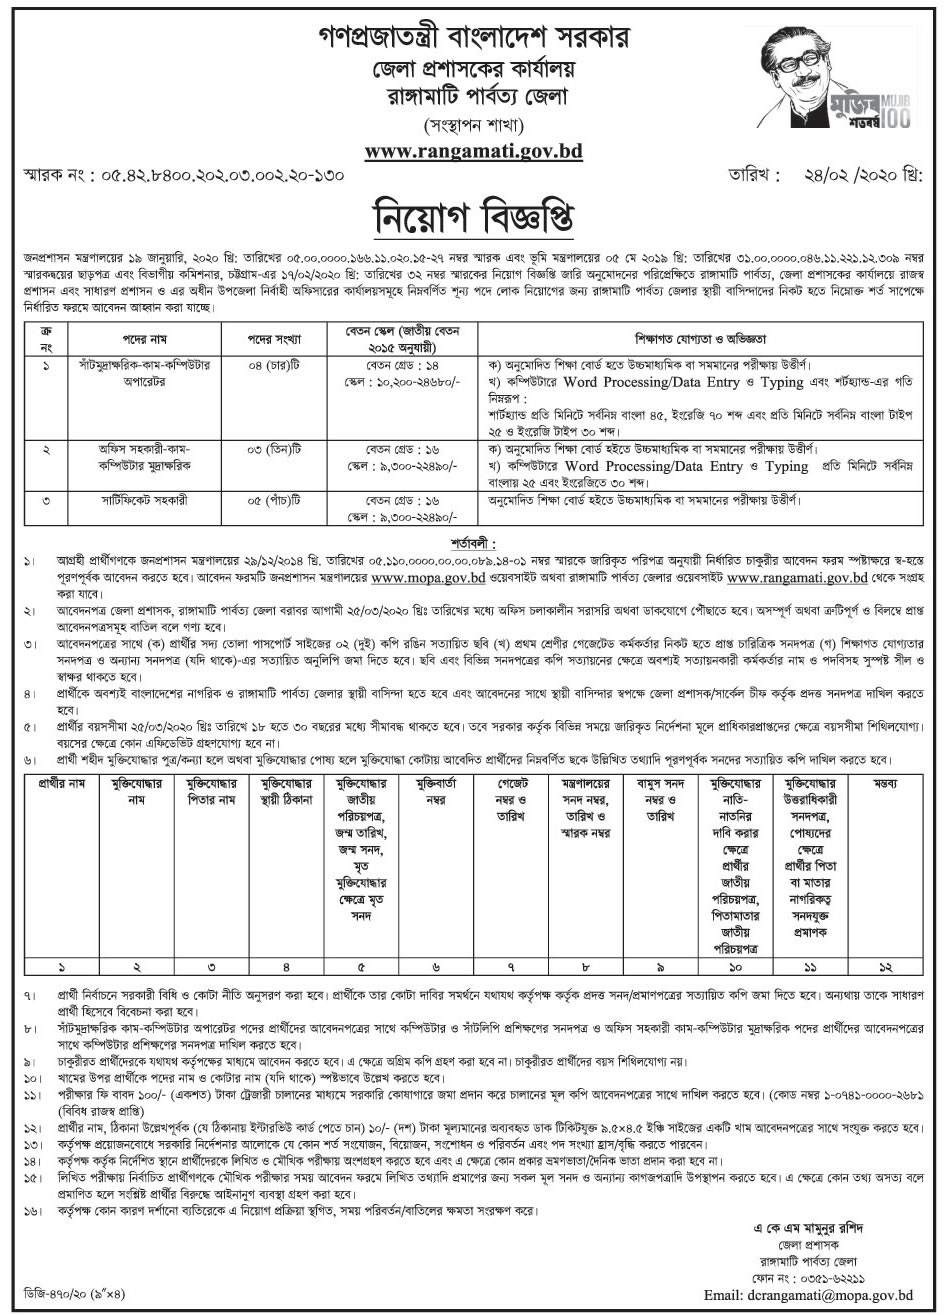 Deputy Commissioner's Office Job Circular 2020